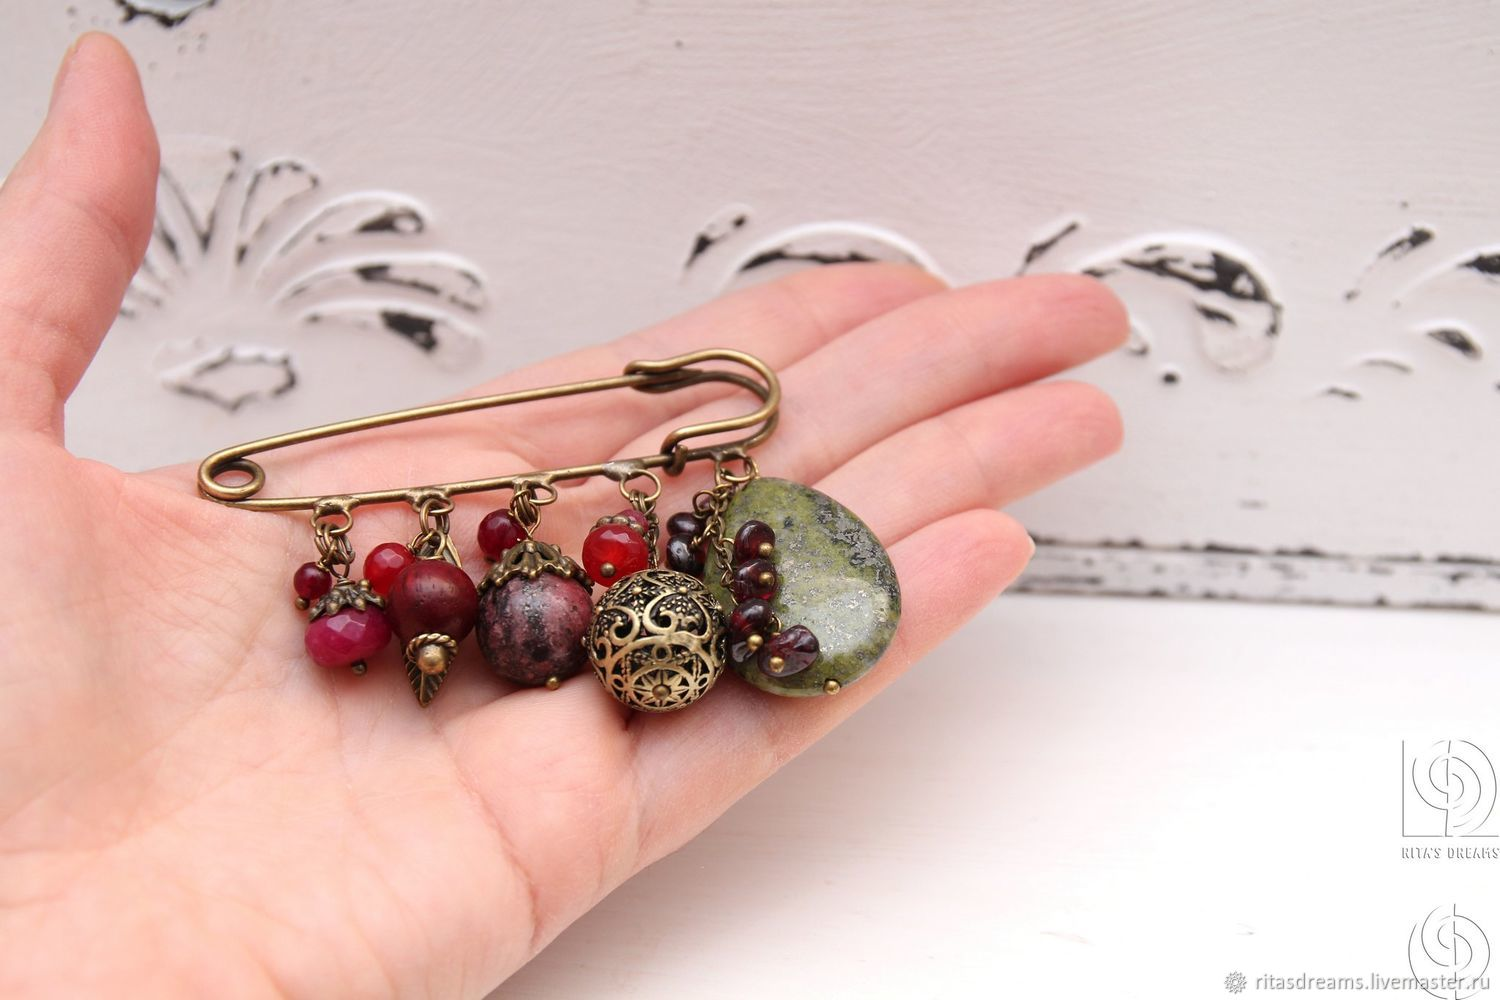 Large brooch safety pin for scarf, stole, coat, cardigan or other knitwear items. Garnet and jade-toned berry shades complement large drop of Jasper the color of faded grass.